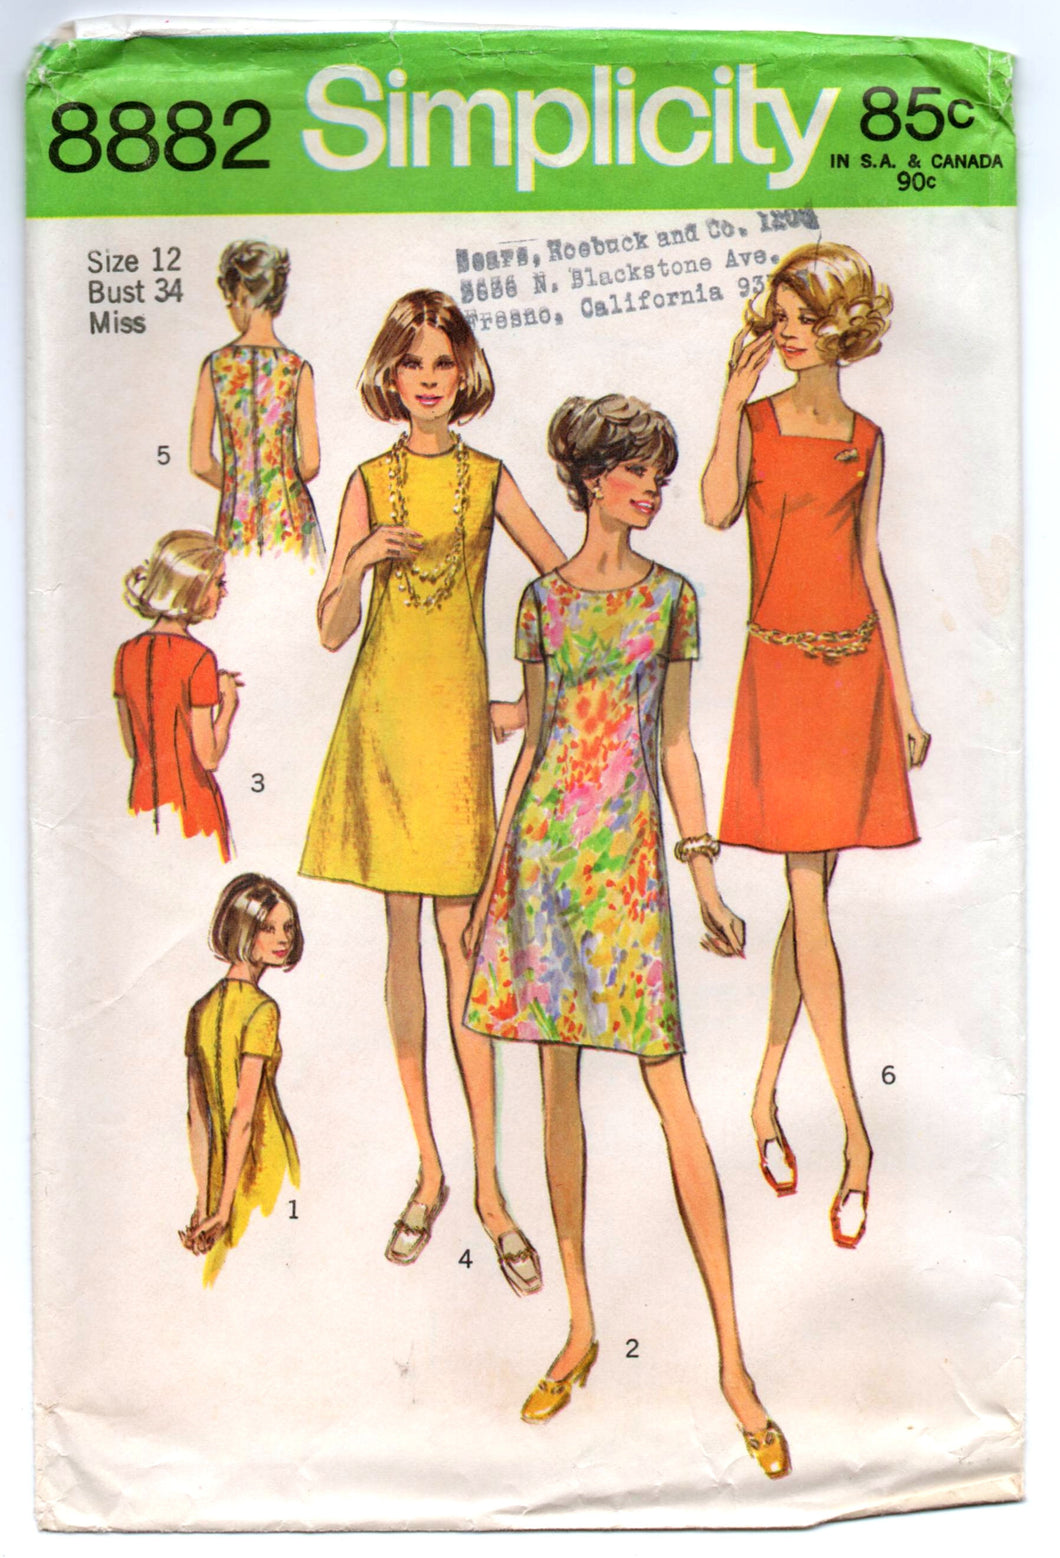 1970's Simplicity One-Piece Dress with square or high collar Pattern - Bust 34